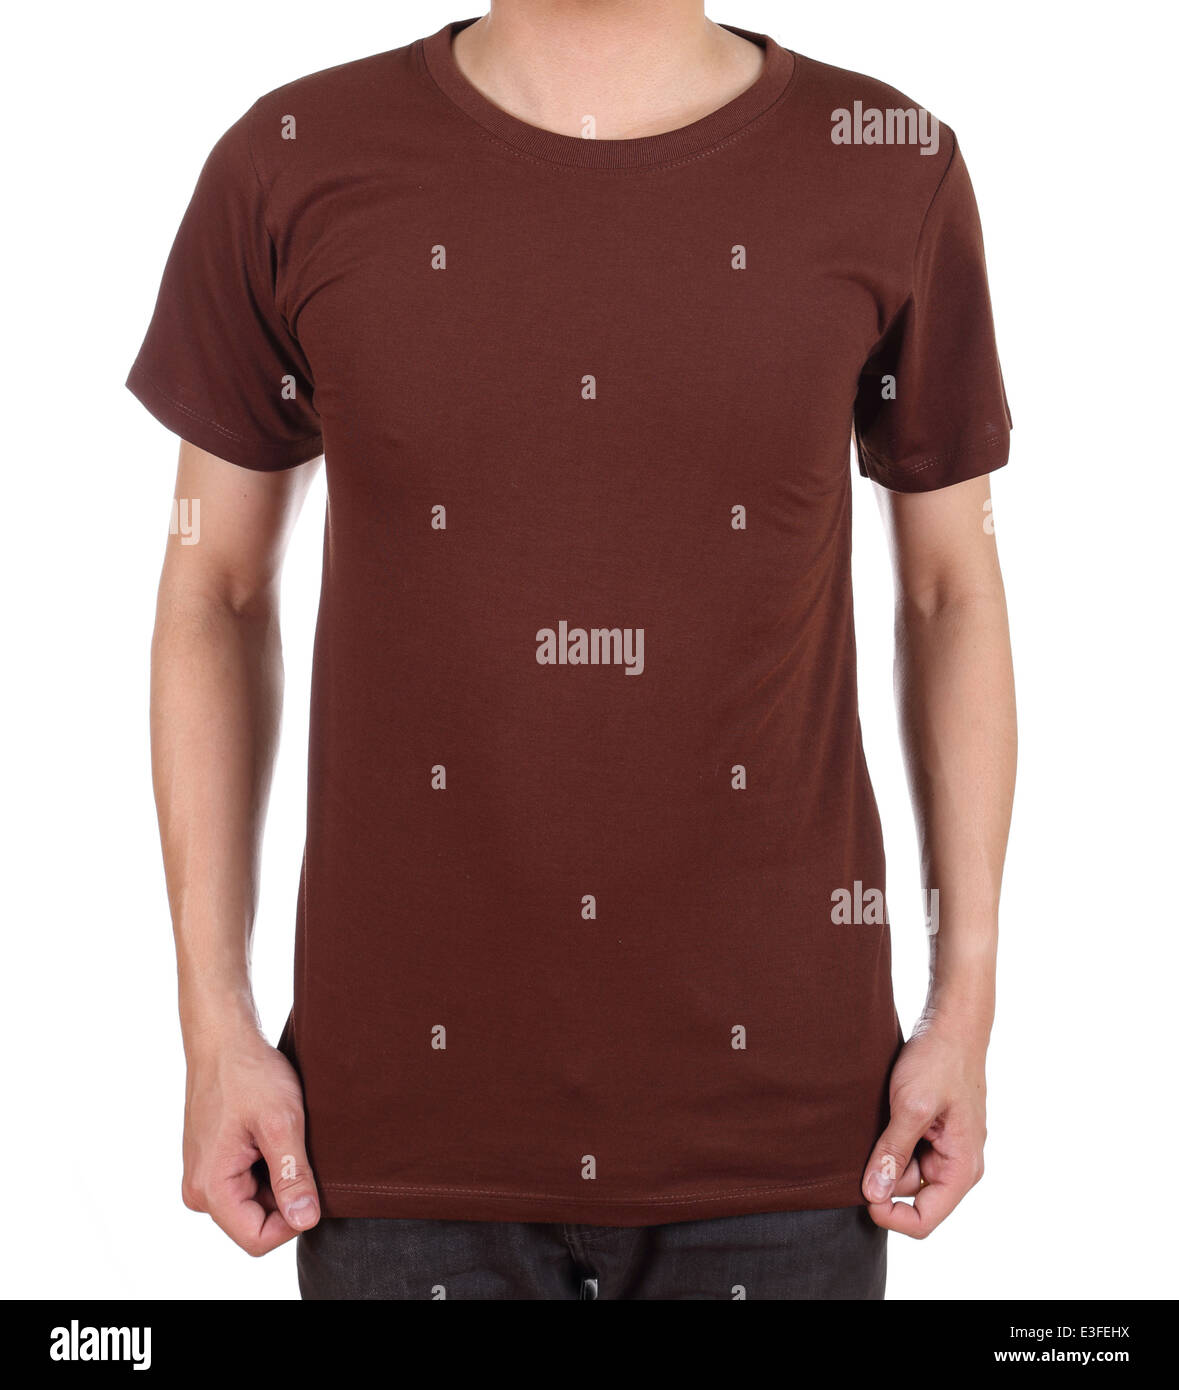 c1223035 blank brown t-shirt on man (front side) isolated on white background ...